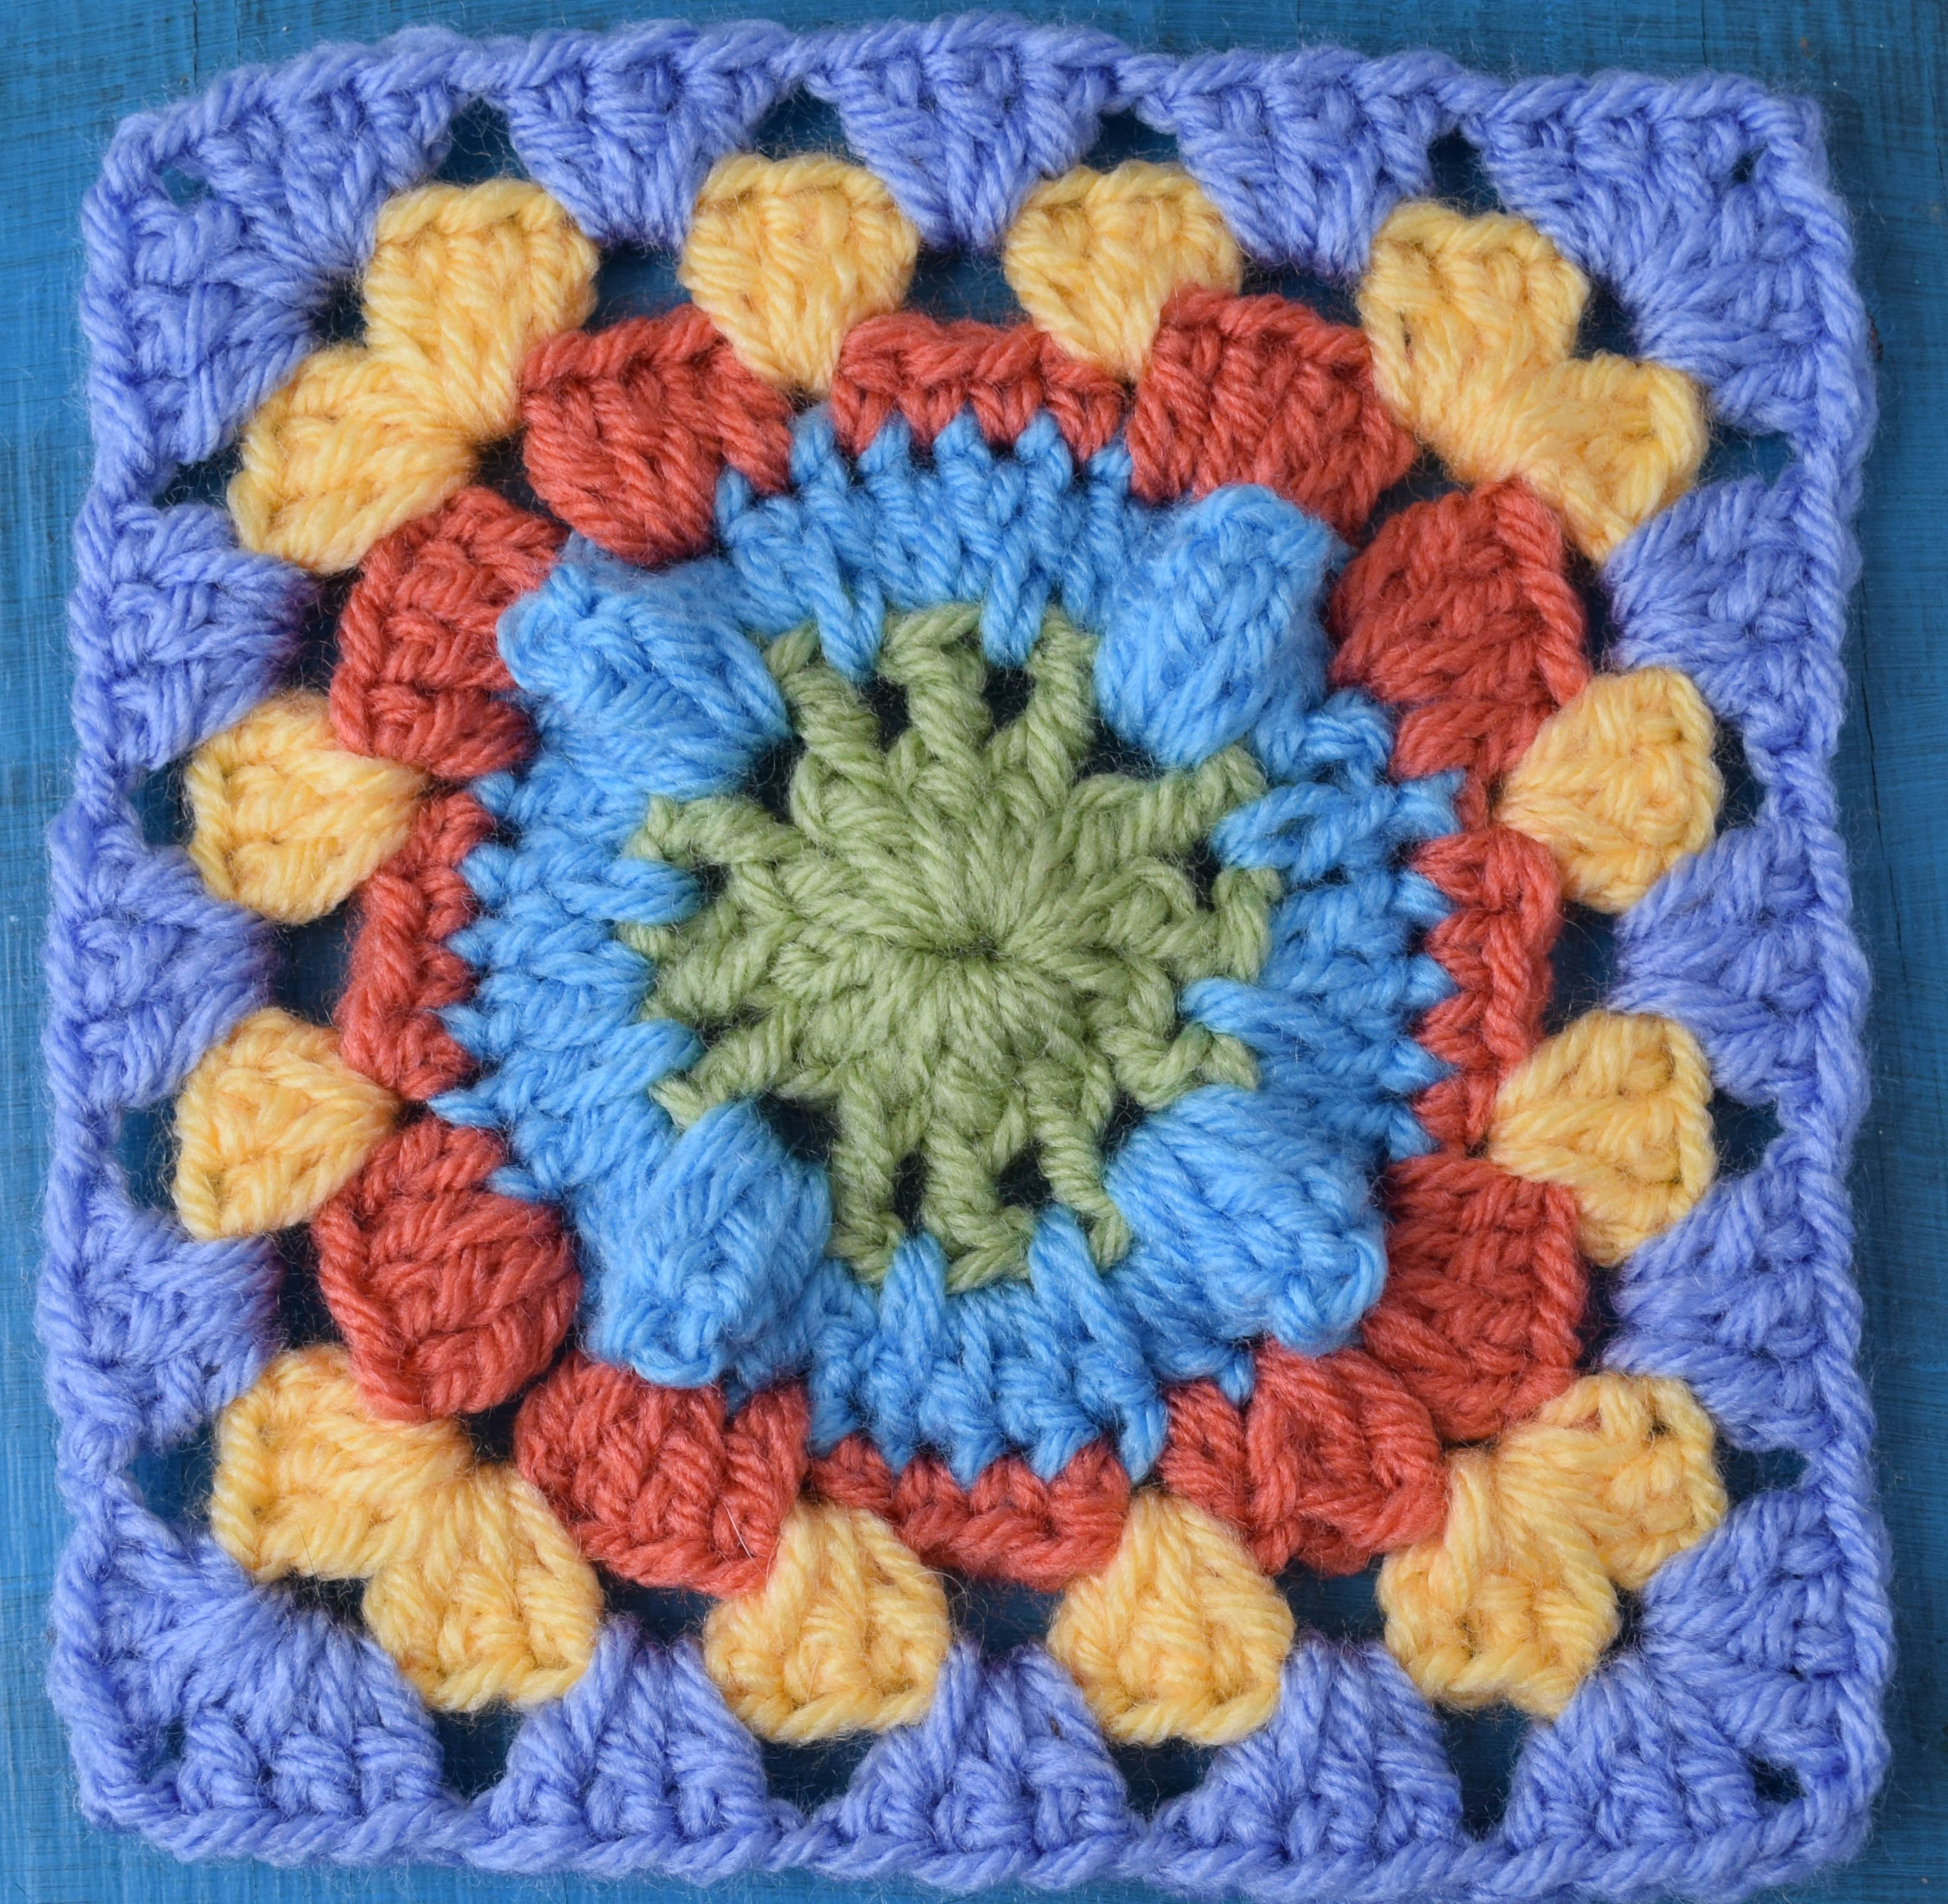 Free Online Crochet Granny Square Patterns : Design Your Own Blanket Using Your Favorite Granny Square ...